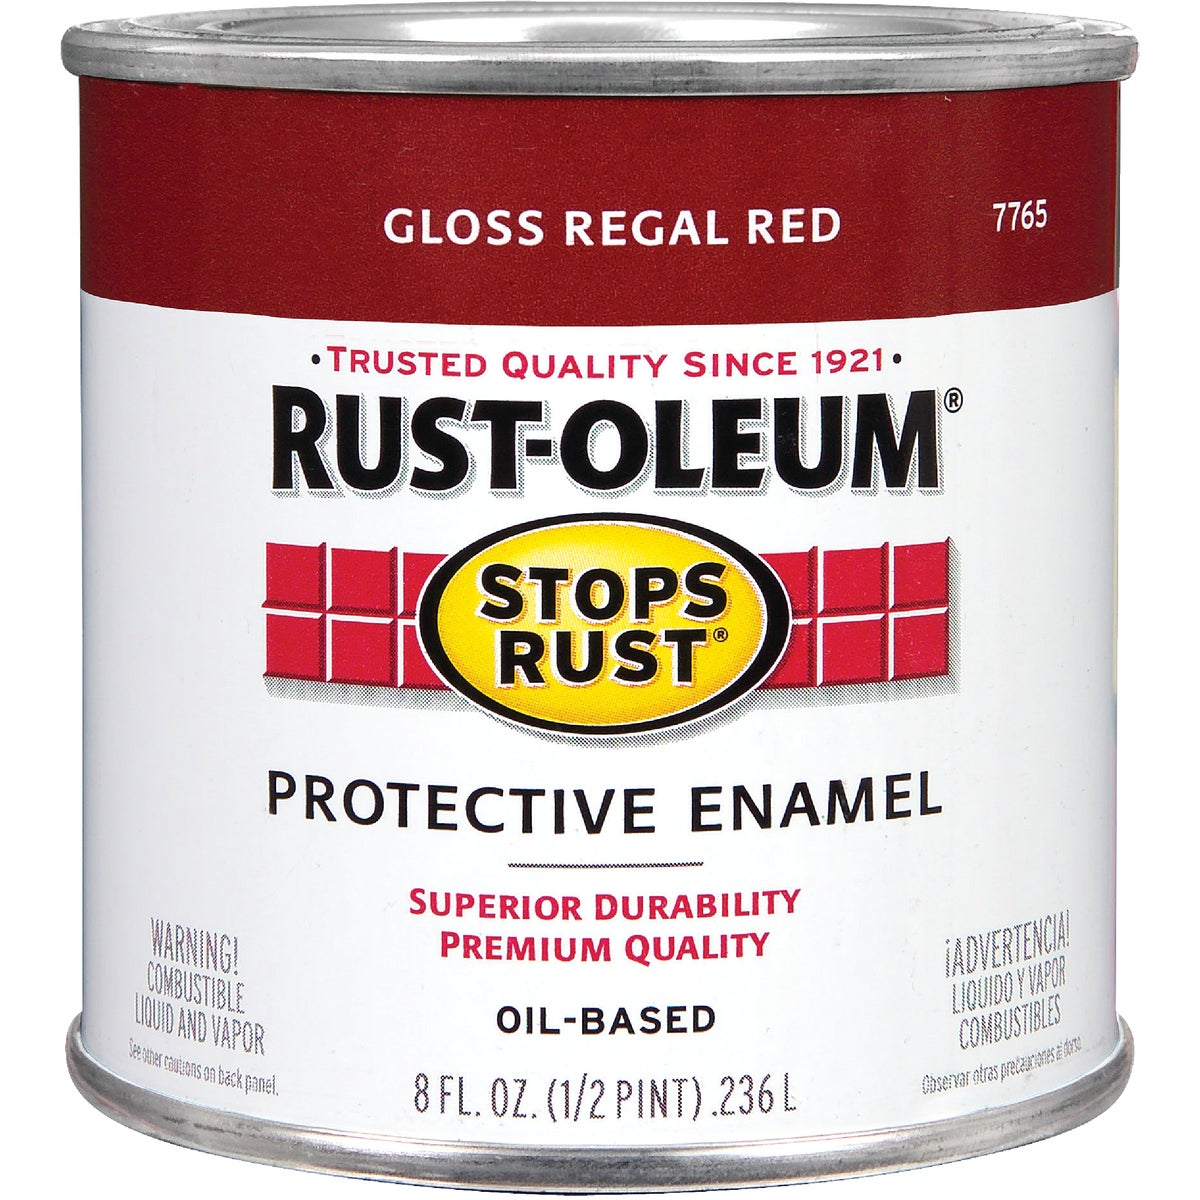 REGAL RED ENAMEL - 7765-730 by Rustoleum